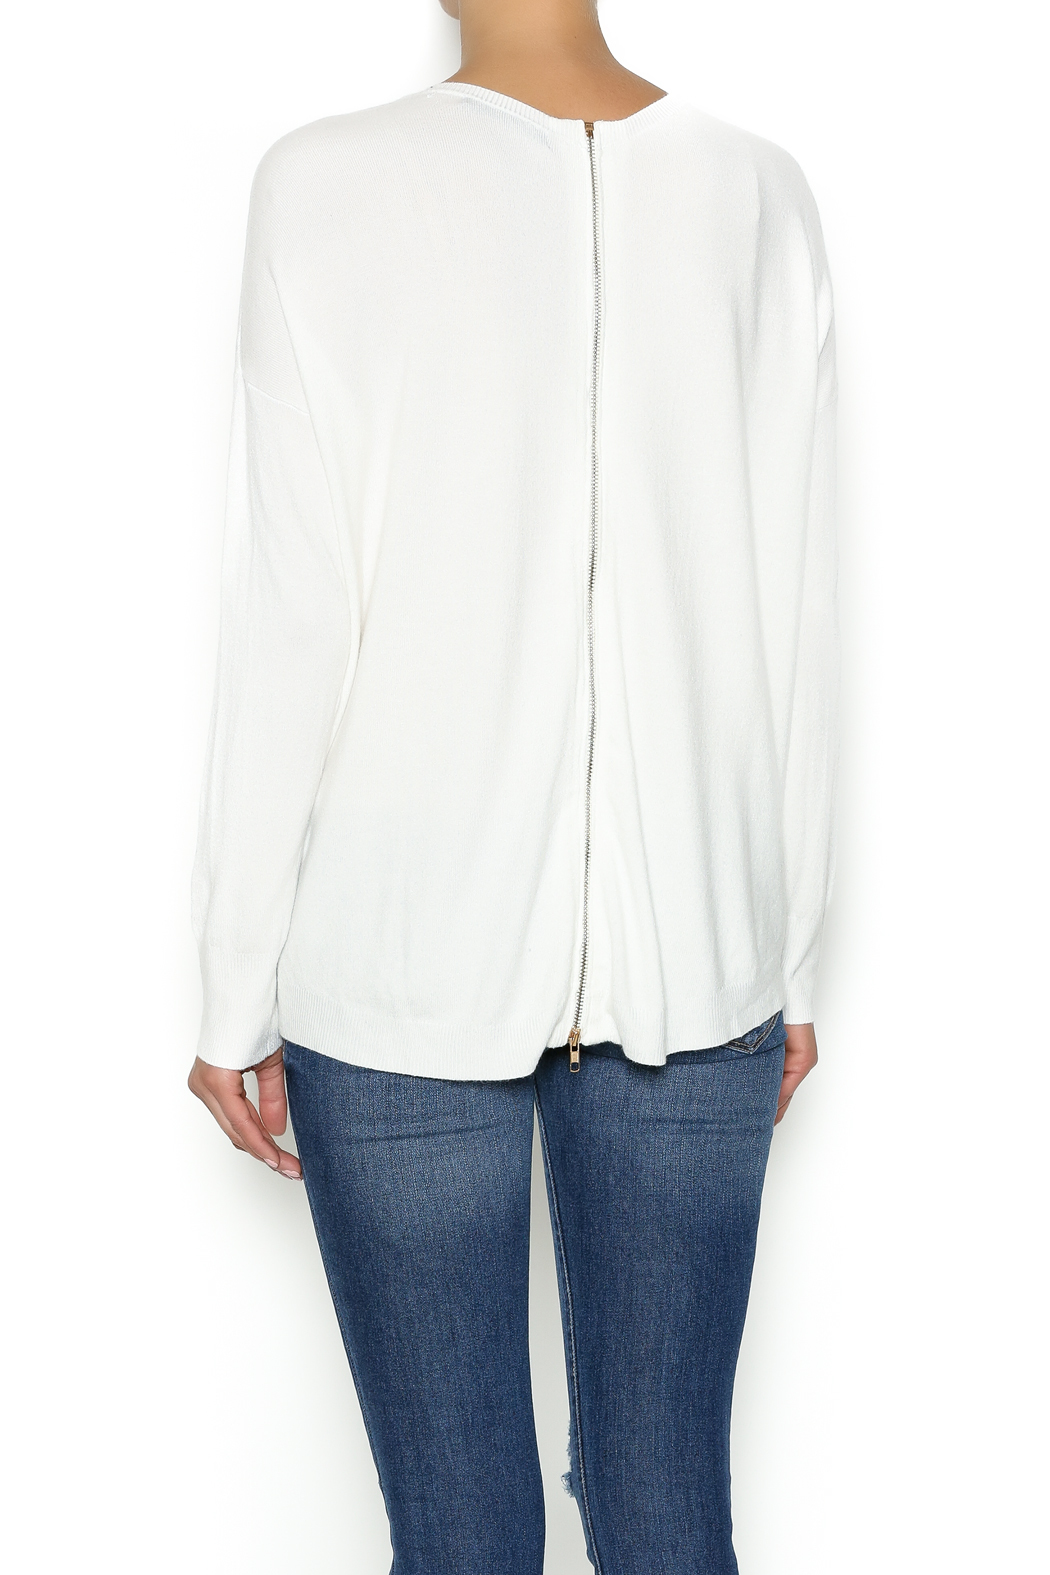 Olivaceous Ivory Soft Sweater - Back Cropped Image